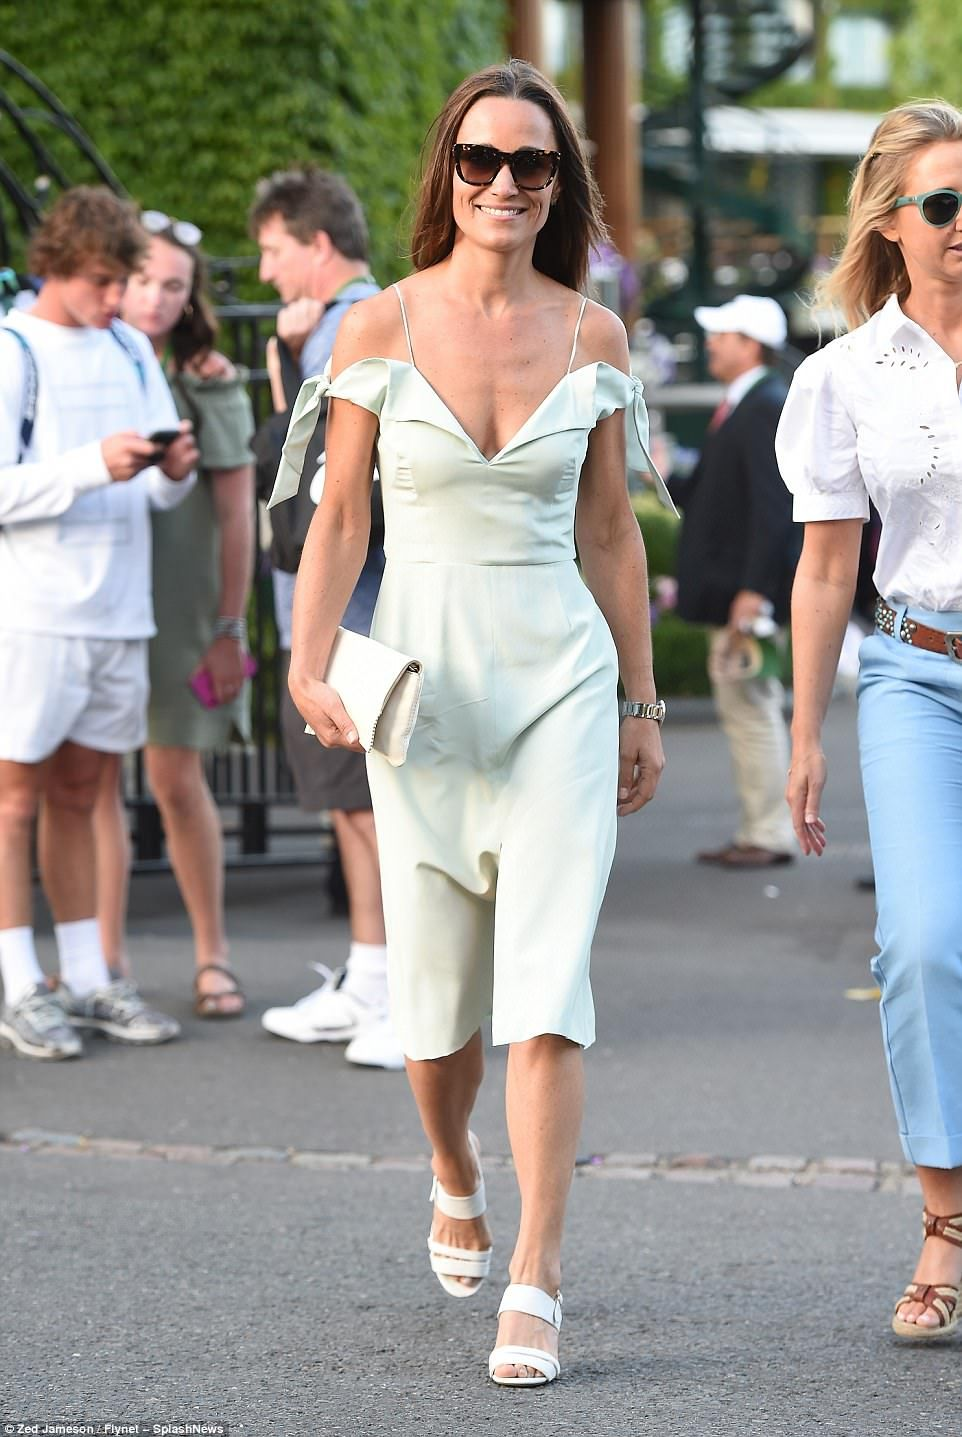 Pippa Middleton wows at yet another glamorous wedding Pippa Middleton wows at yet another glamorous wedding new pictures